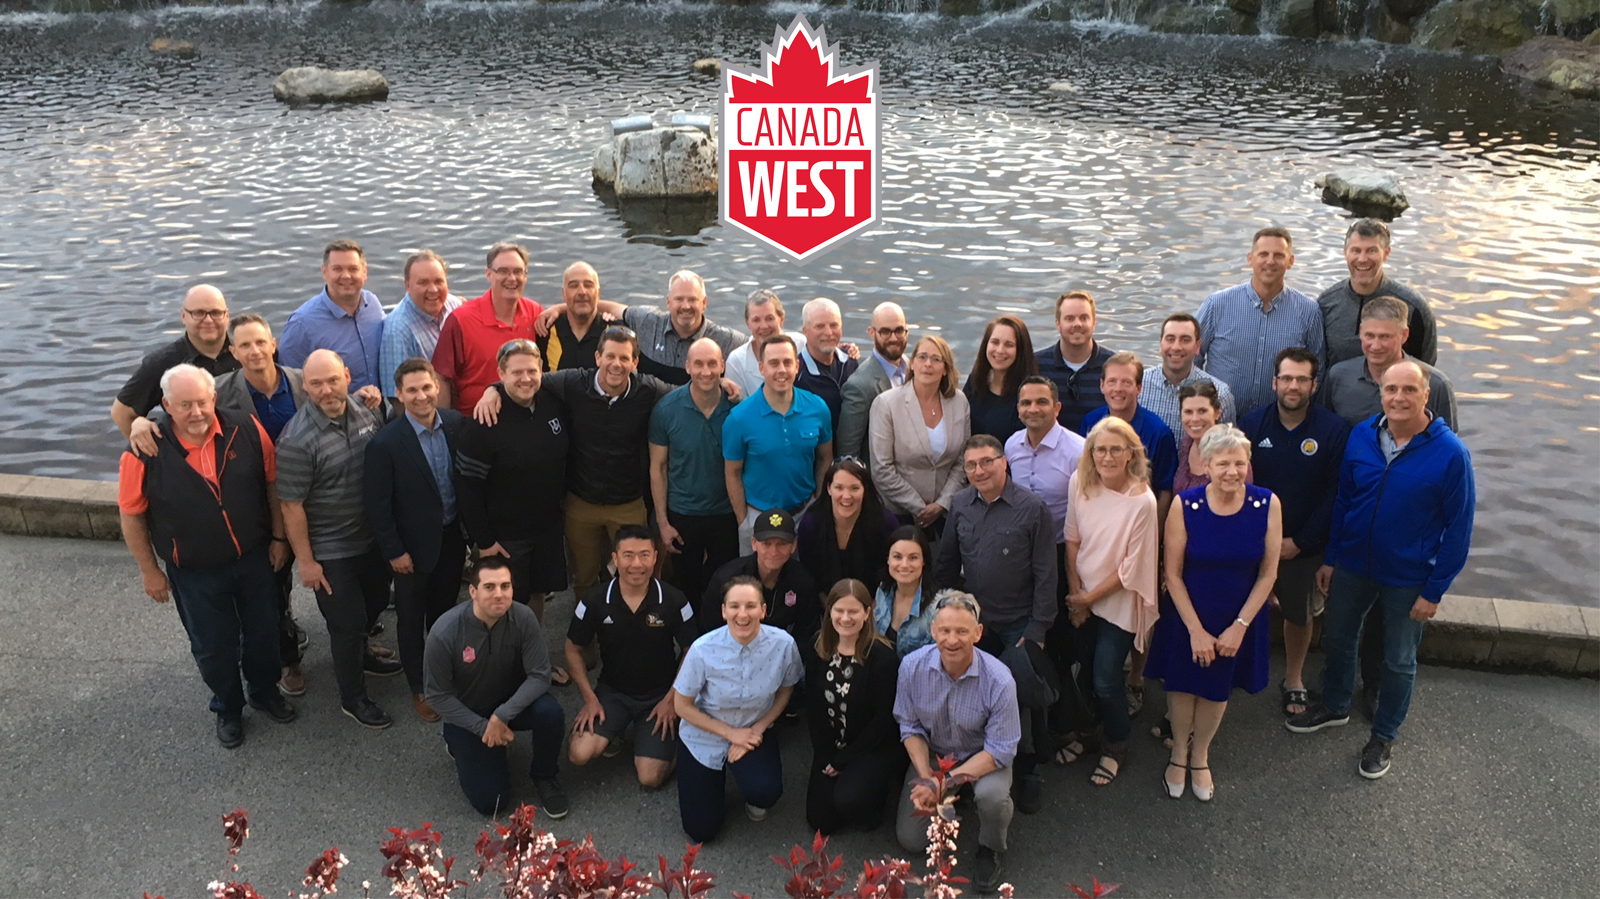 Additions of curling, golf highlight Canada West AGM in Kelowna